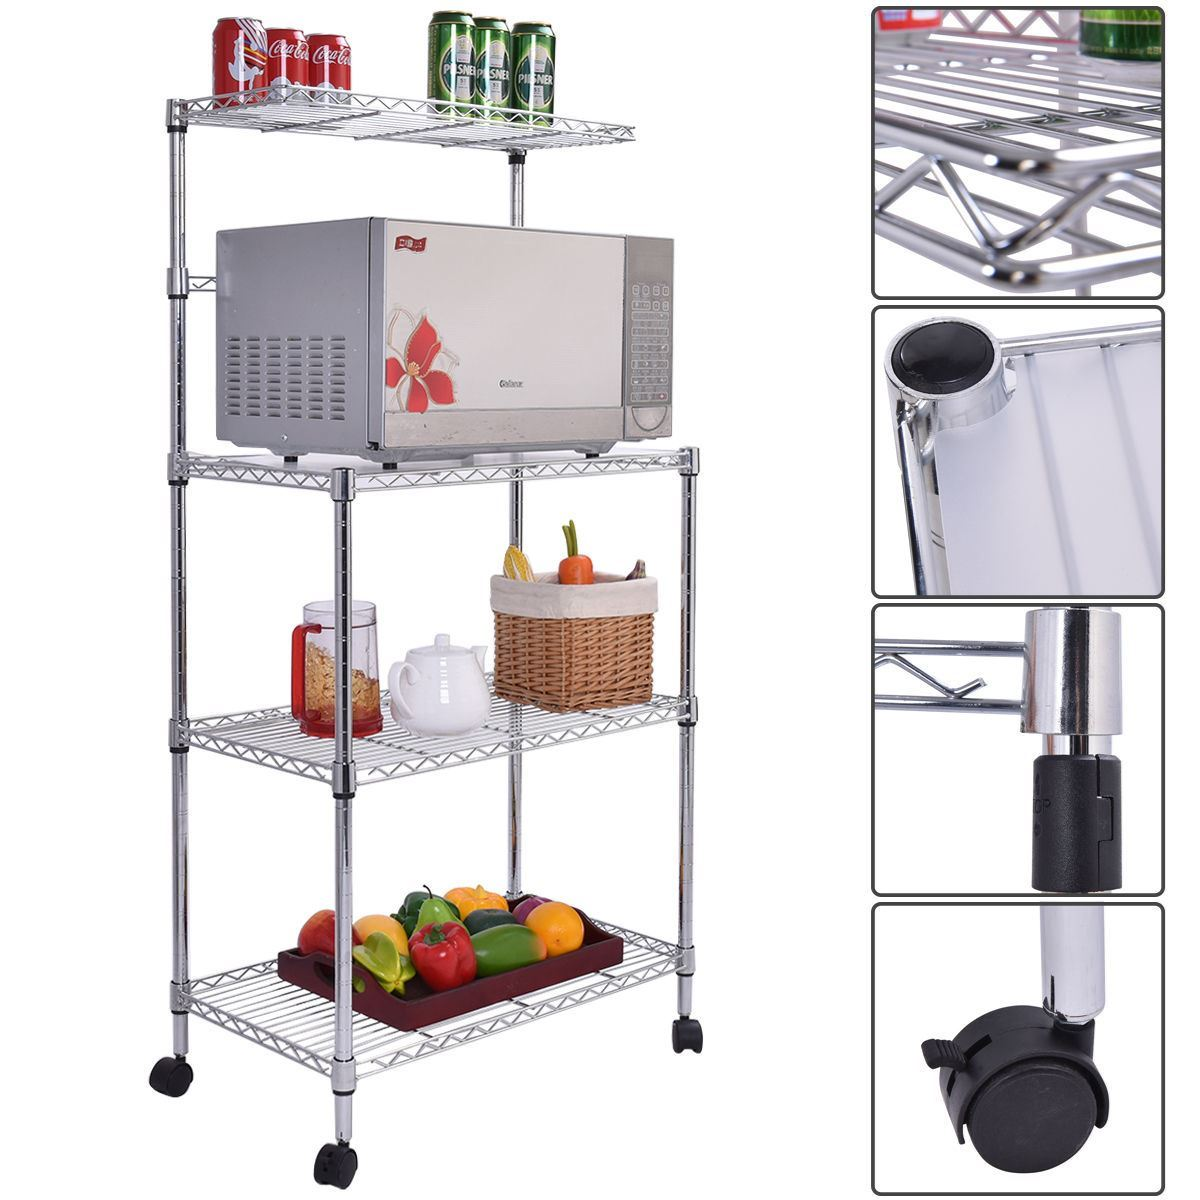 Kitchen Baker's Rack Microwave Oven Stand Storage Cart Wo...